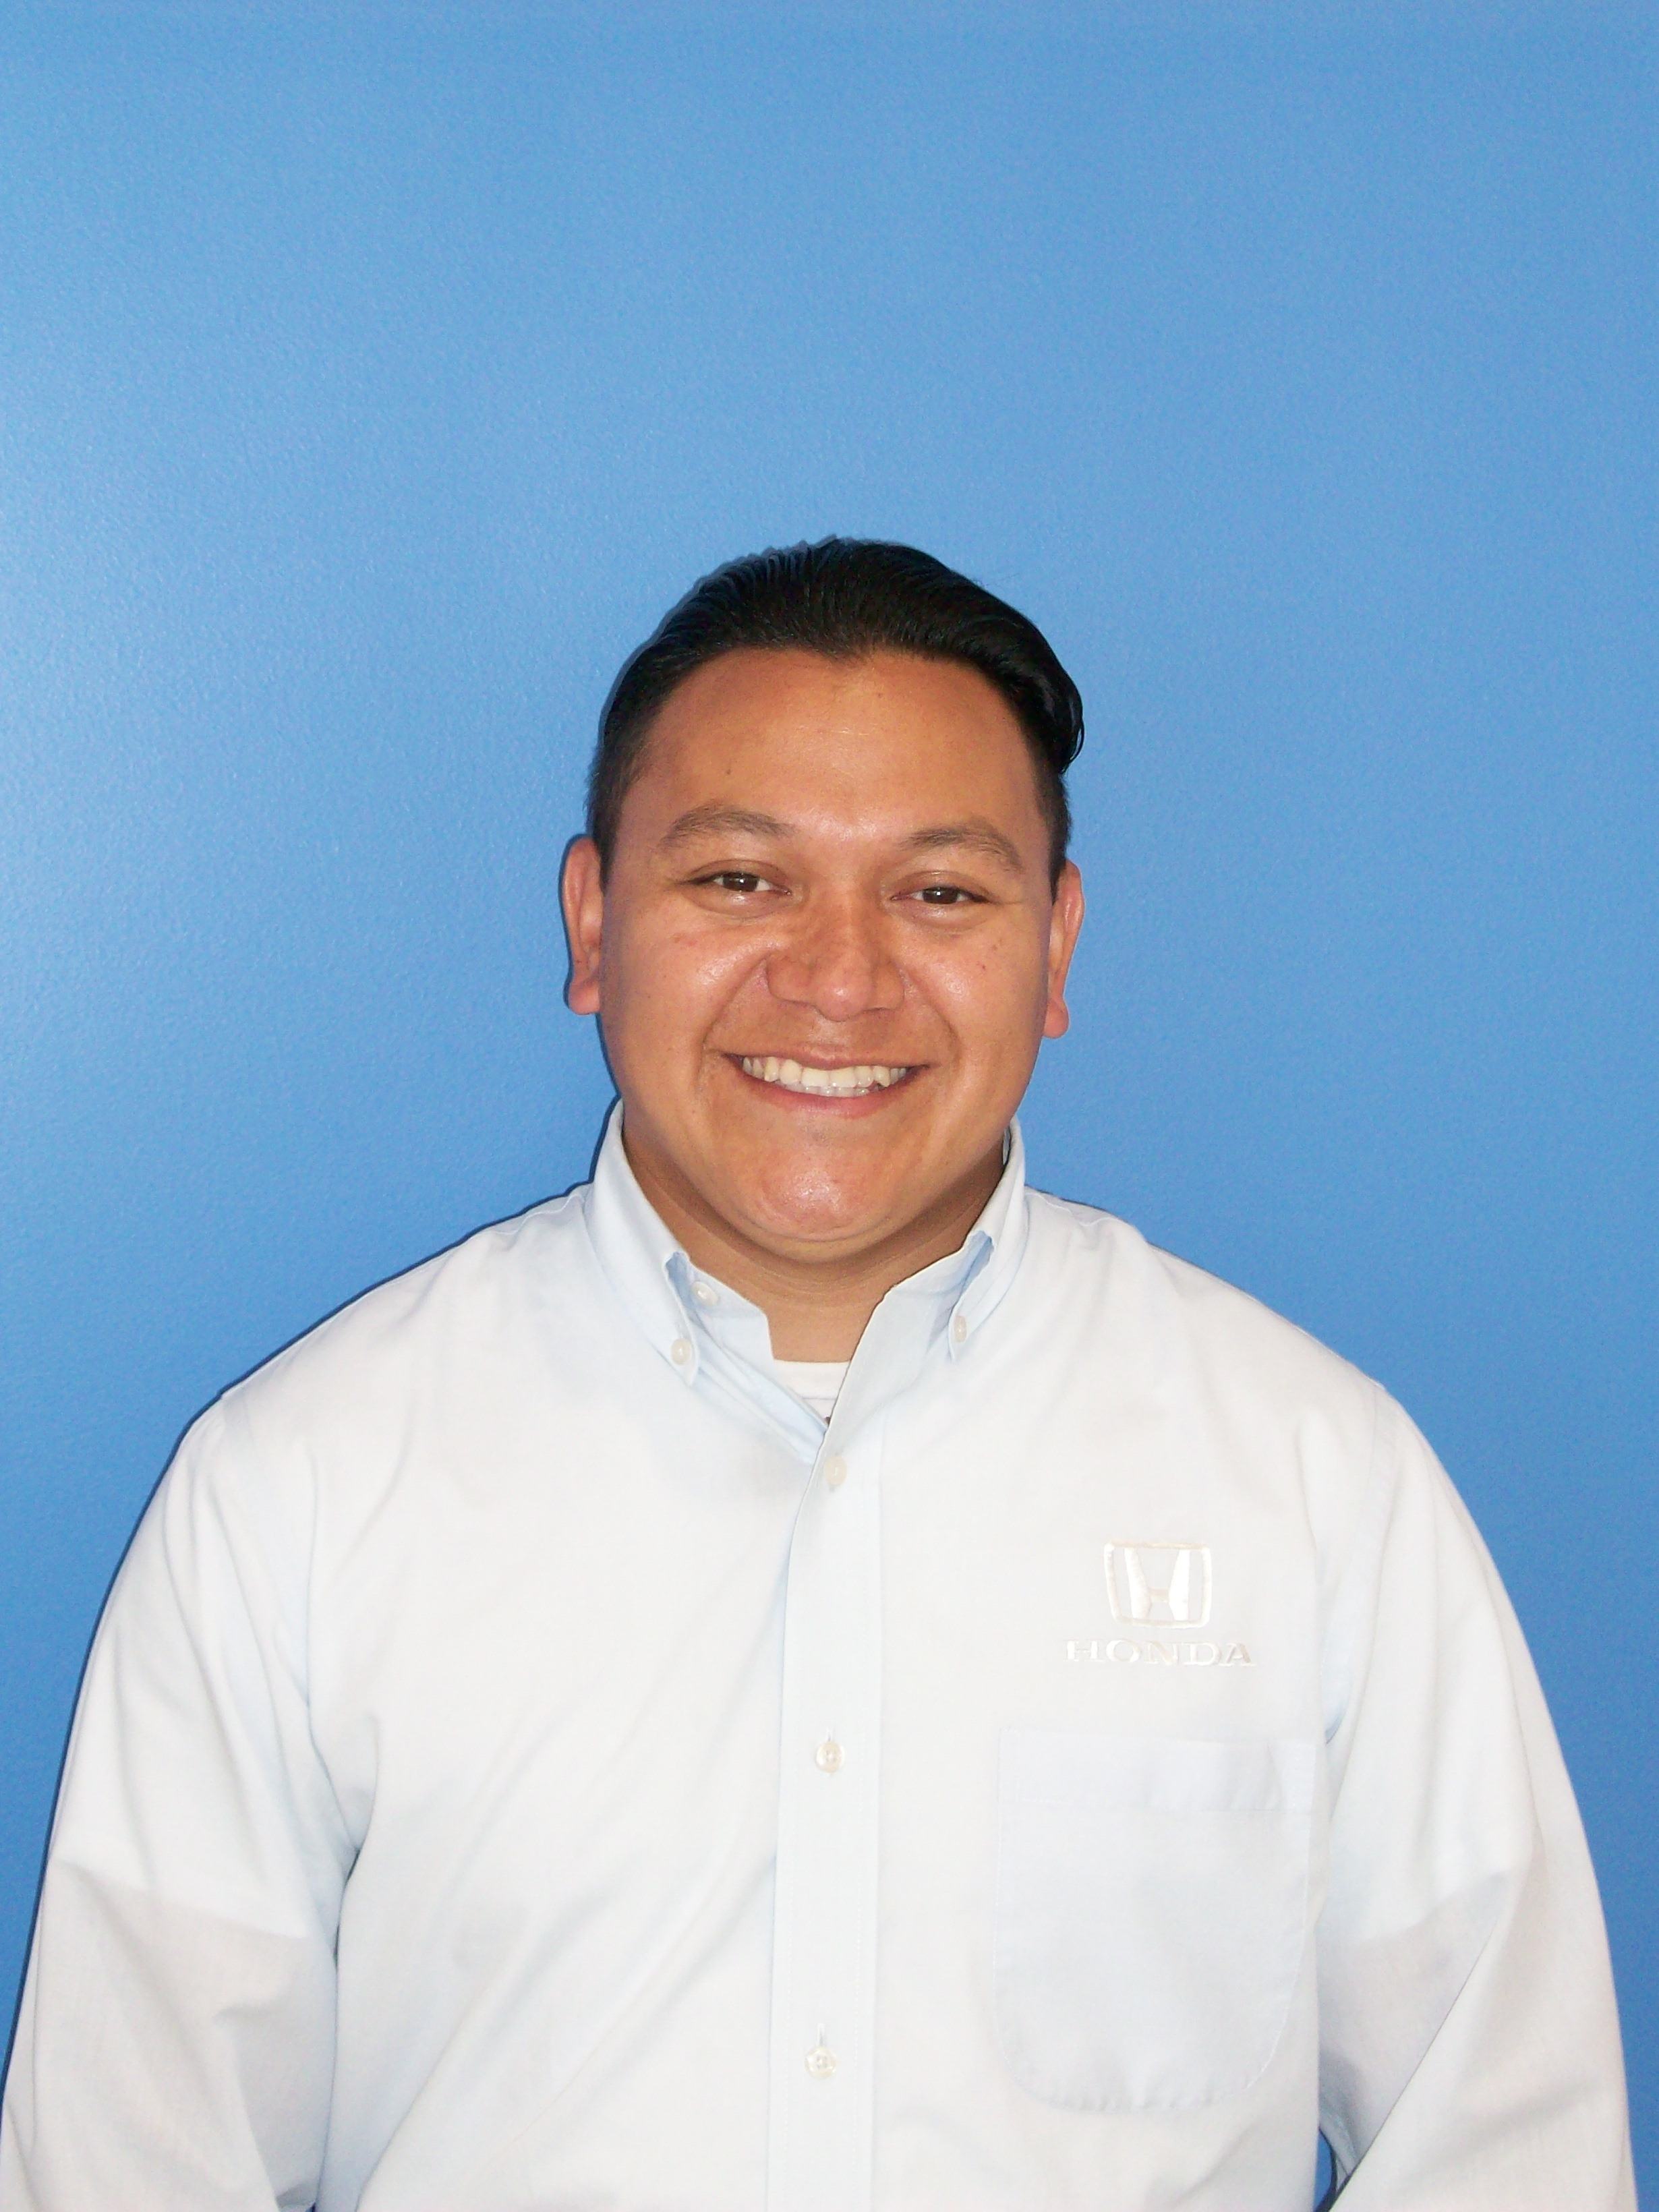 Eddie Ortiz - Internet Sales Manager